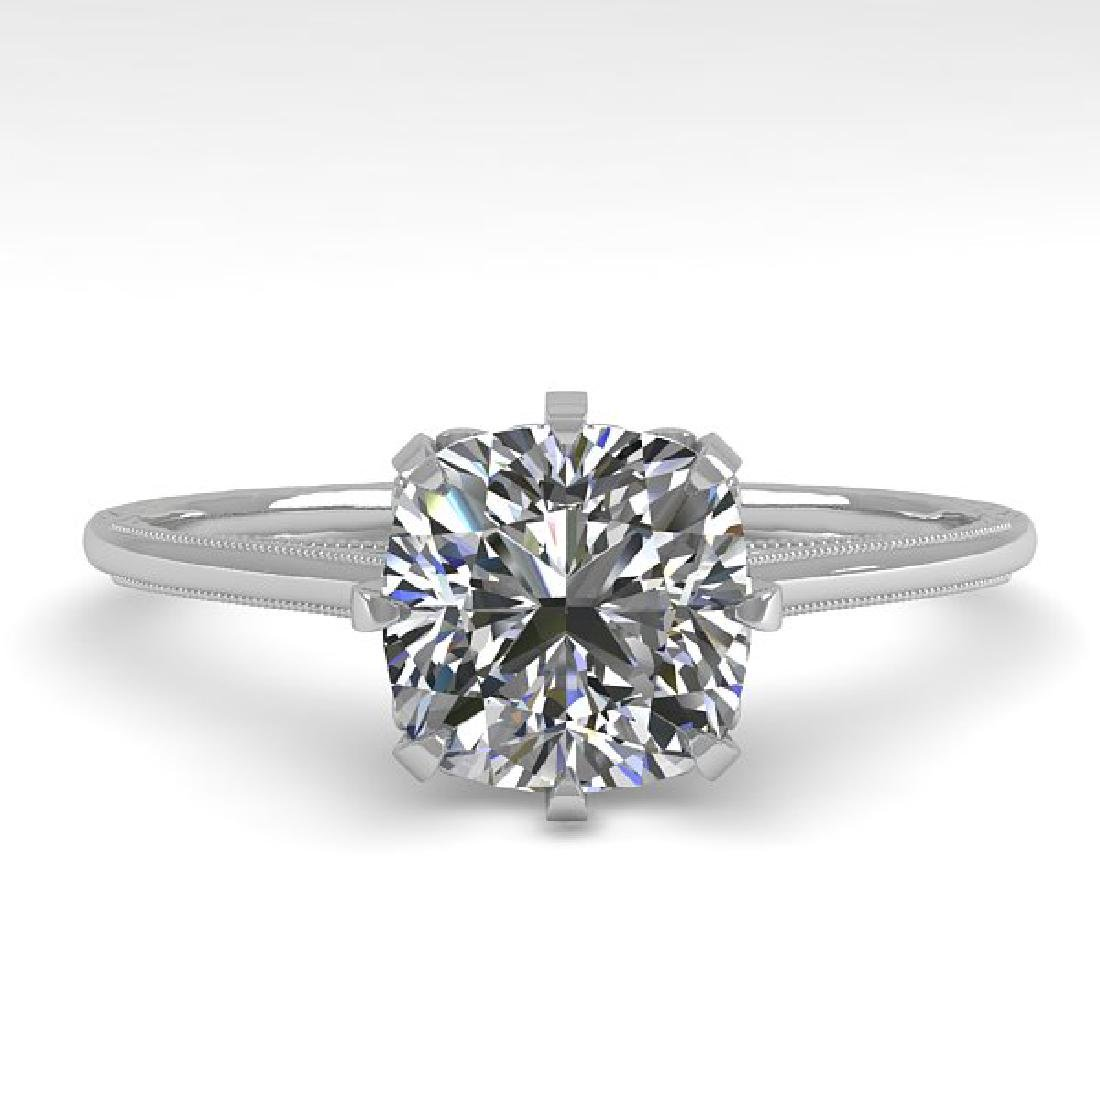 1.0 CTW Certified VS/SI Cushion Diamond Ring 14K White